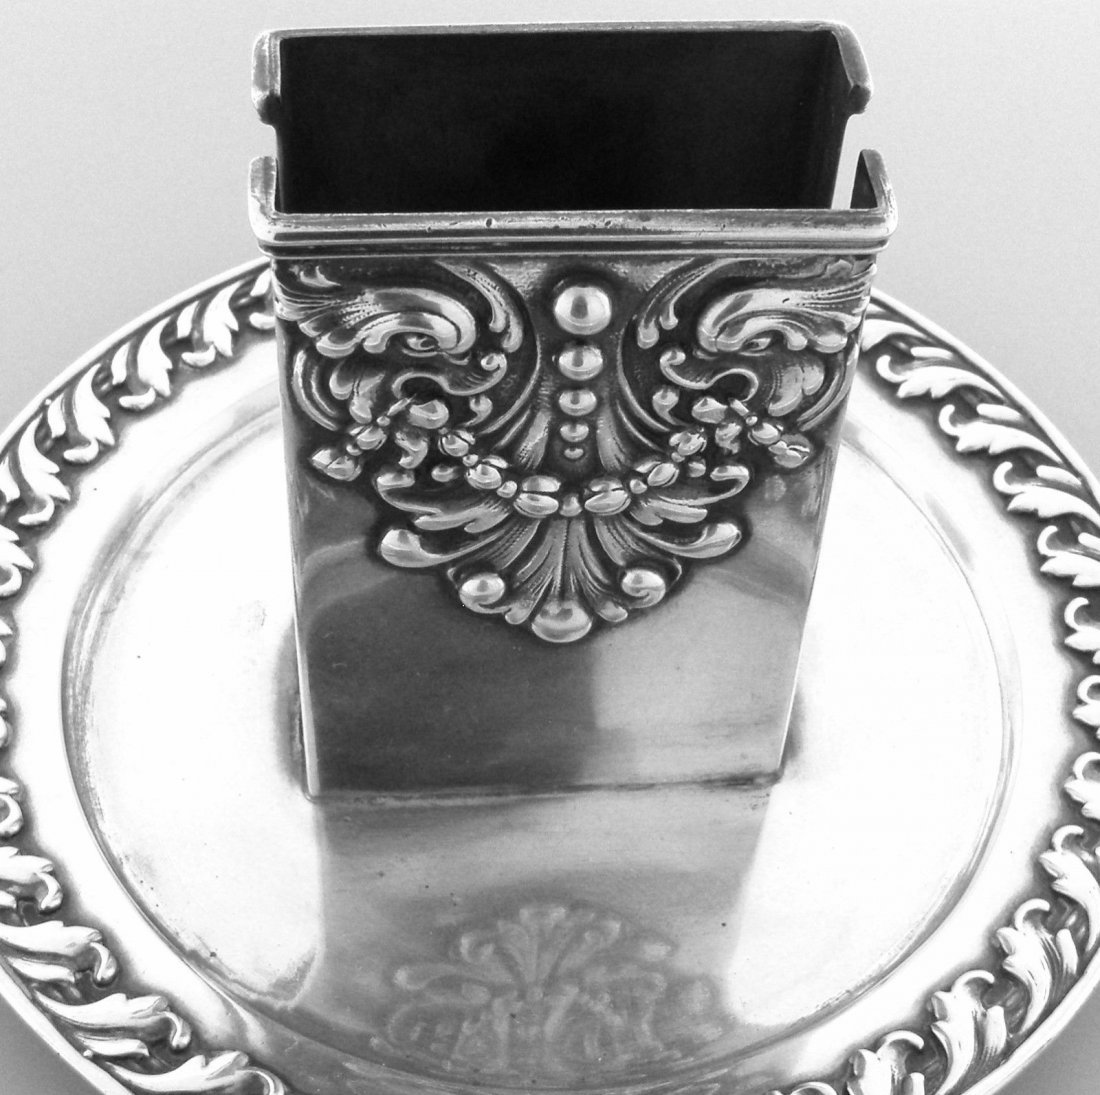 VINTAGE TIFFANY & Co. STERLING MATCHBOX CANDLE HOLDER